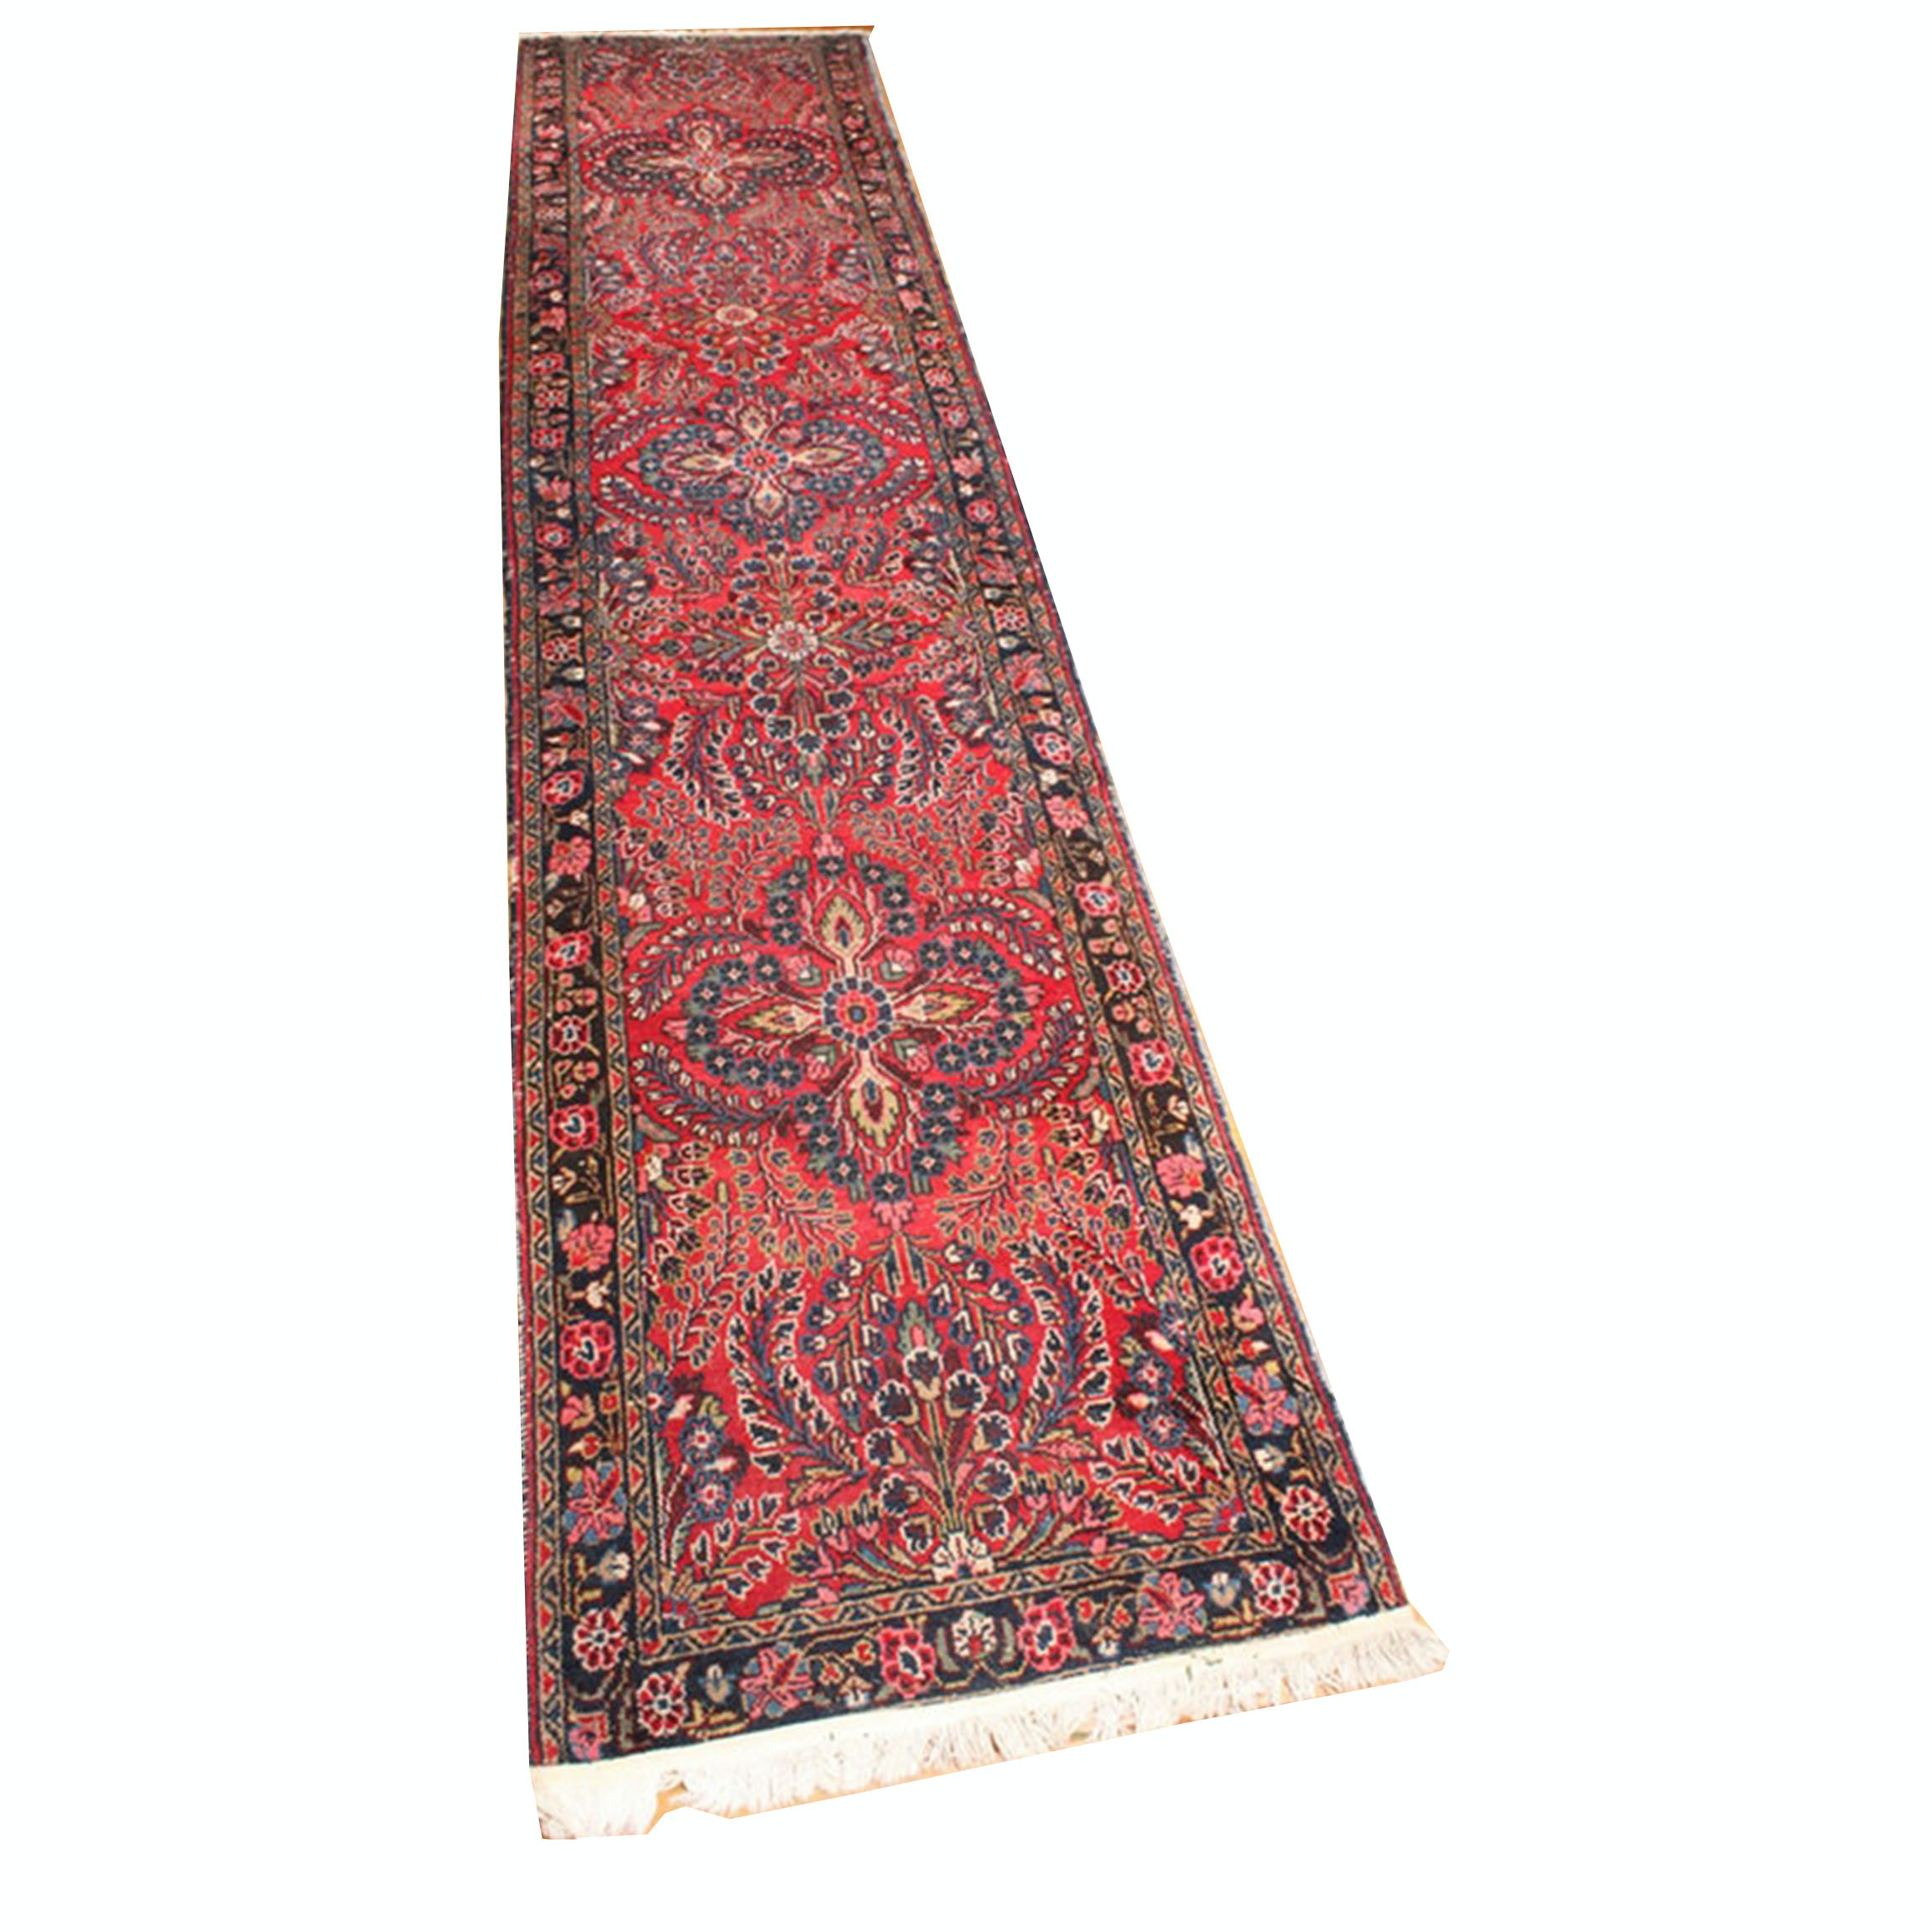 Vintage Hand-Knotted Persian Rug Runner